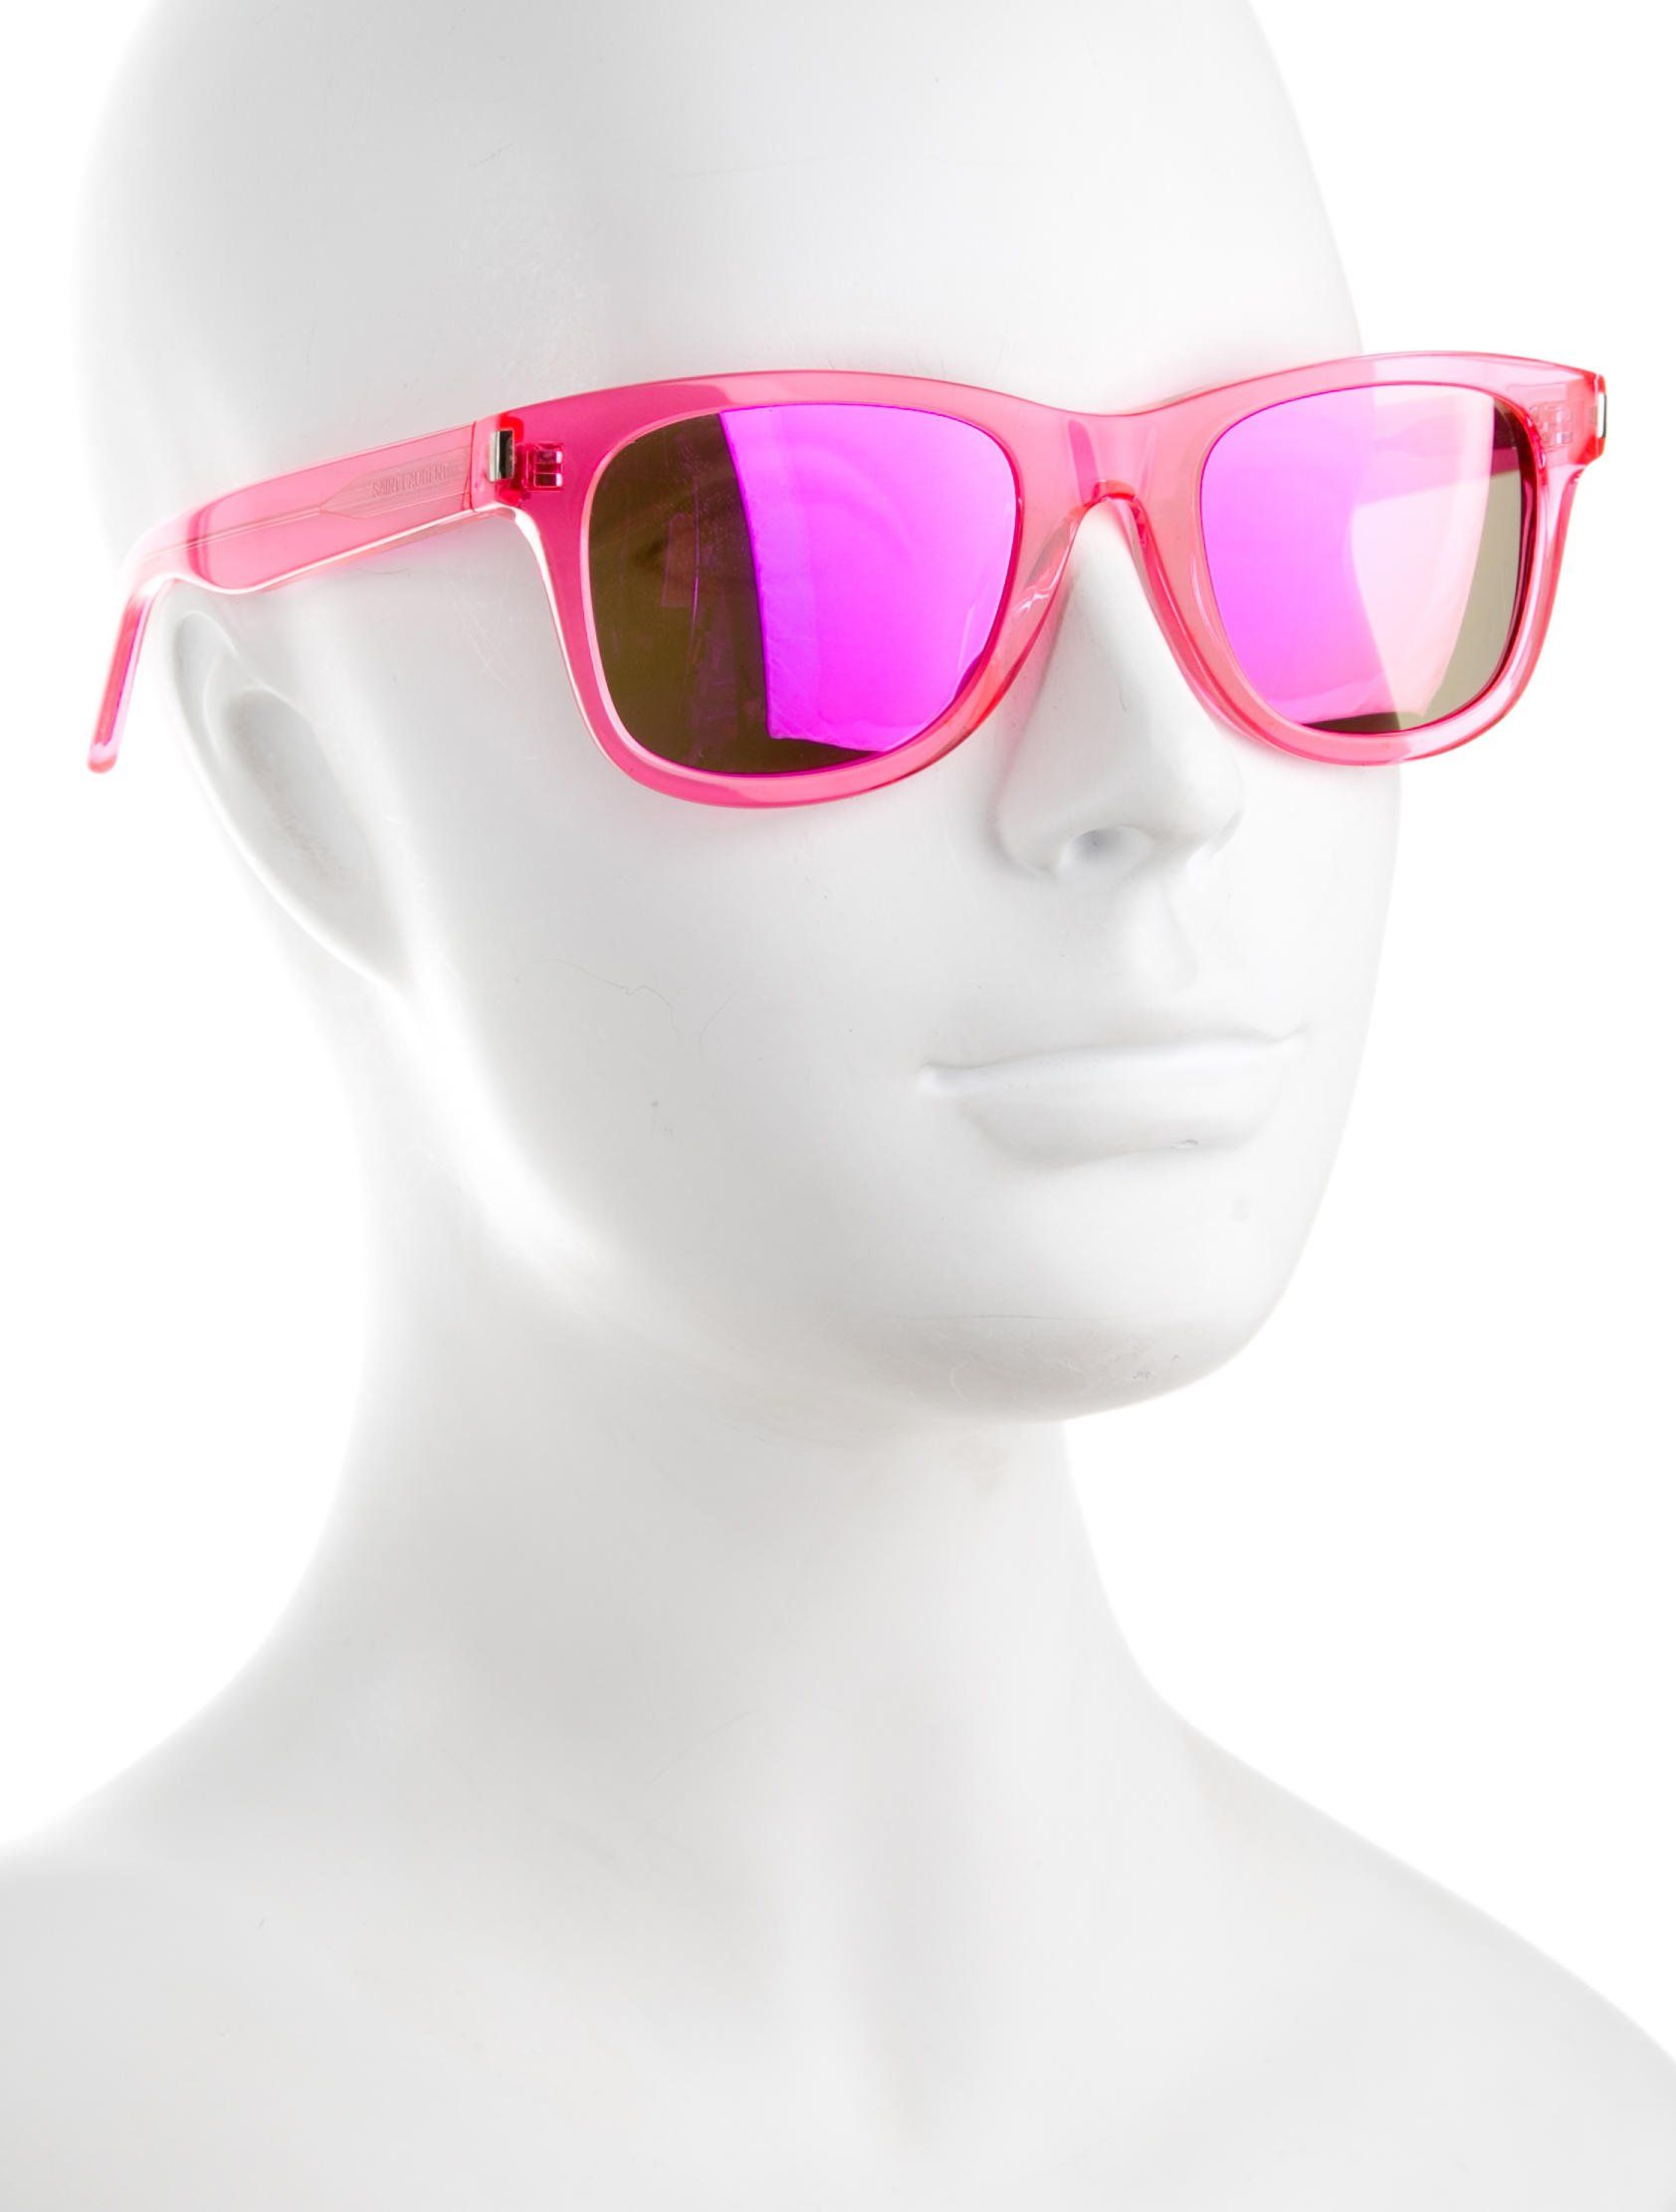 d57cd7afac Pink Saint Laurent translucent wayfarer sunglasses featuring pink mirrored  lenses and logo at temples. Includes